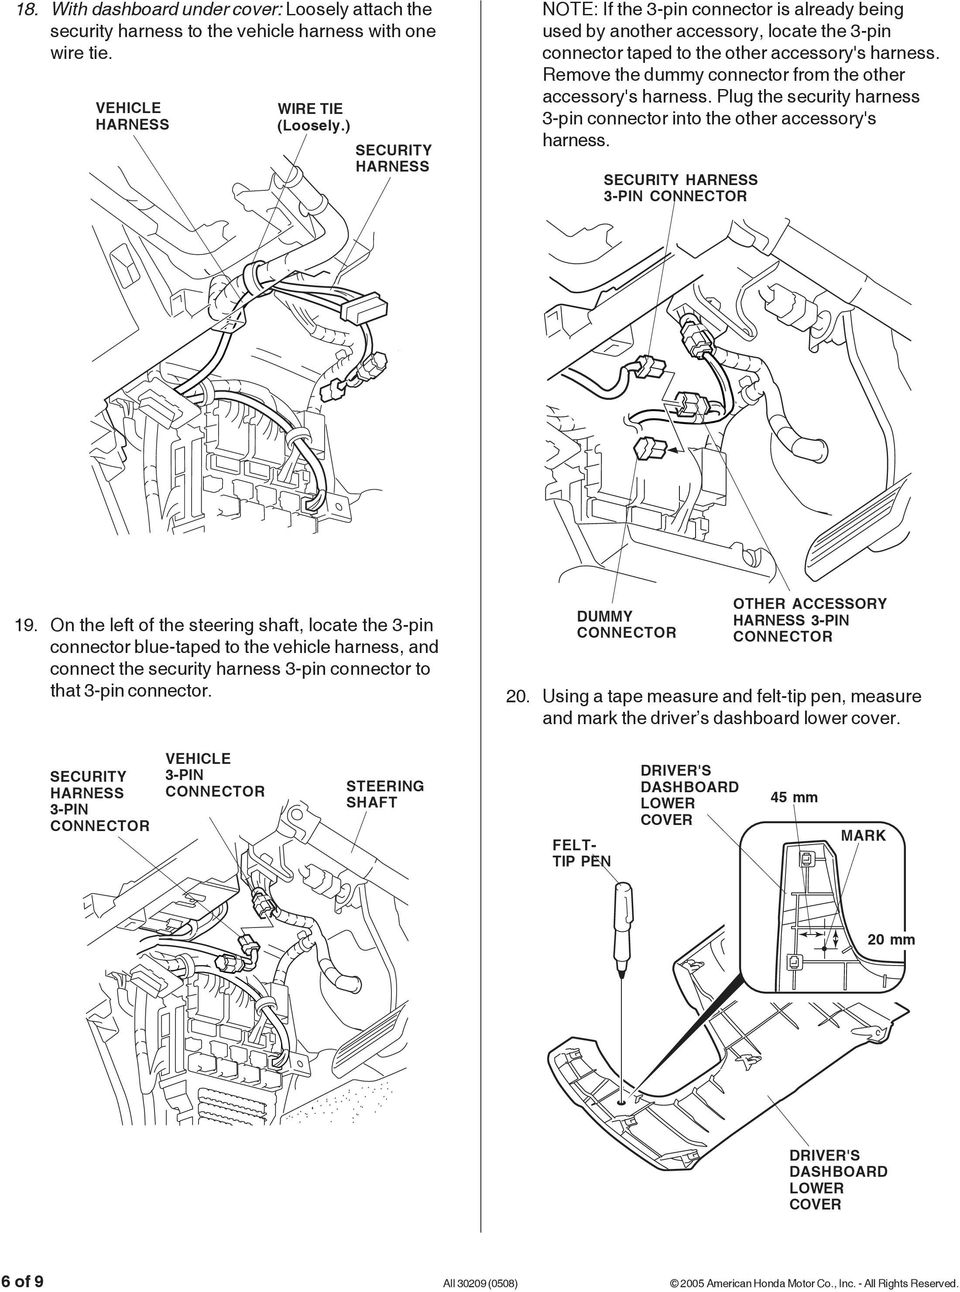 Installation Instructions Pdf Tundra Trailer Wiring Harness Removal Remove The Dummy Connector From Other Accessorys Plug Security 3